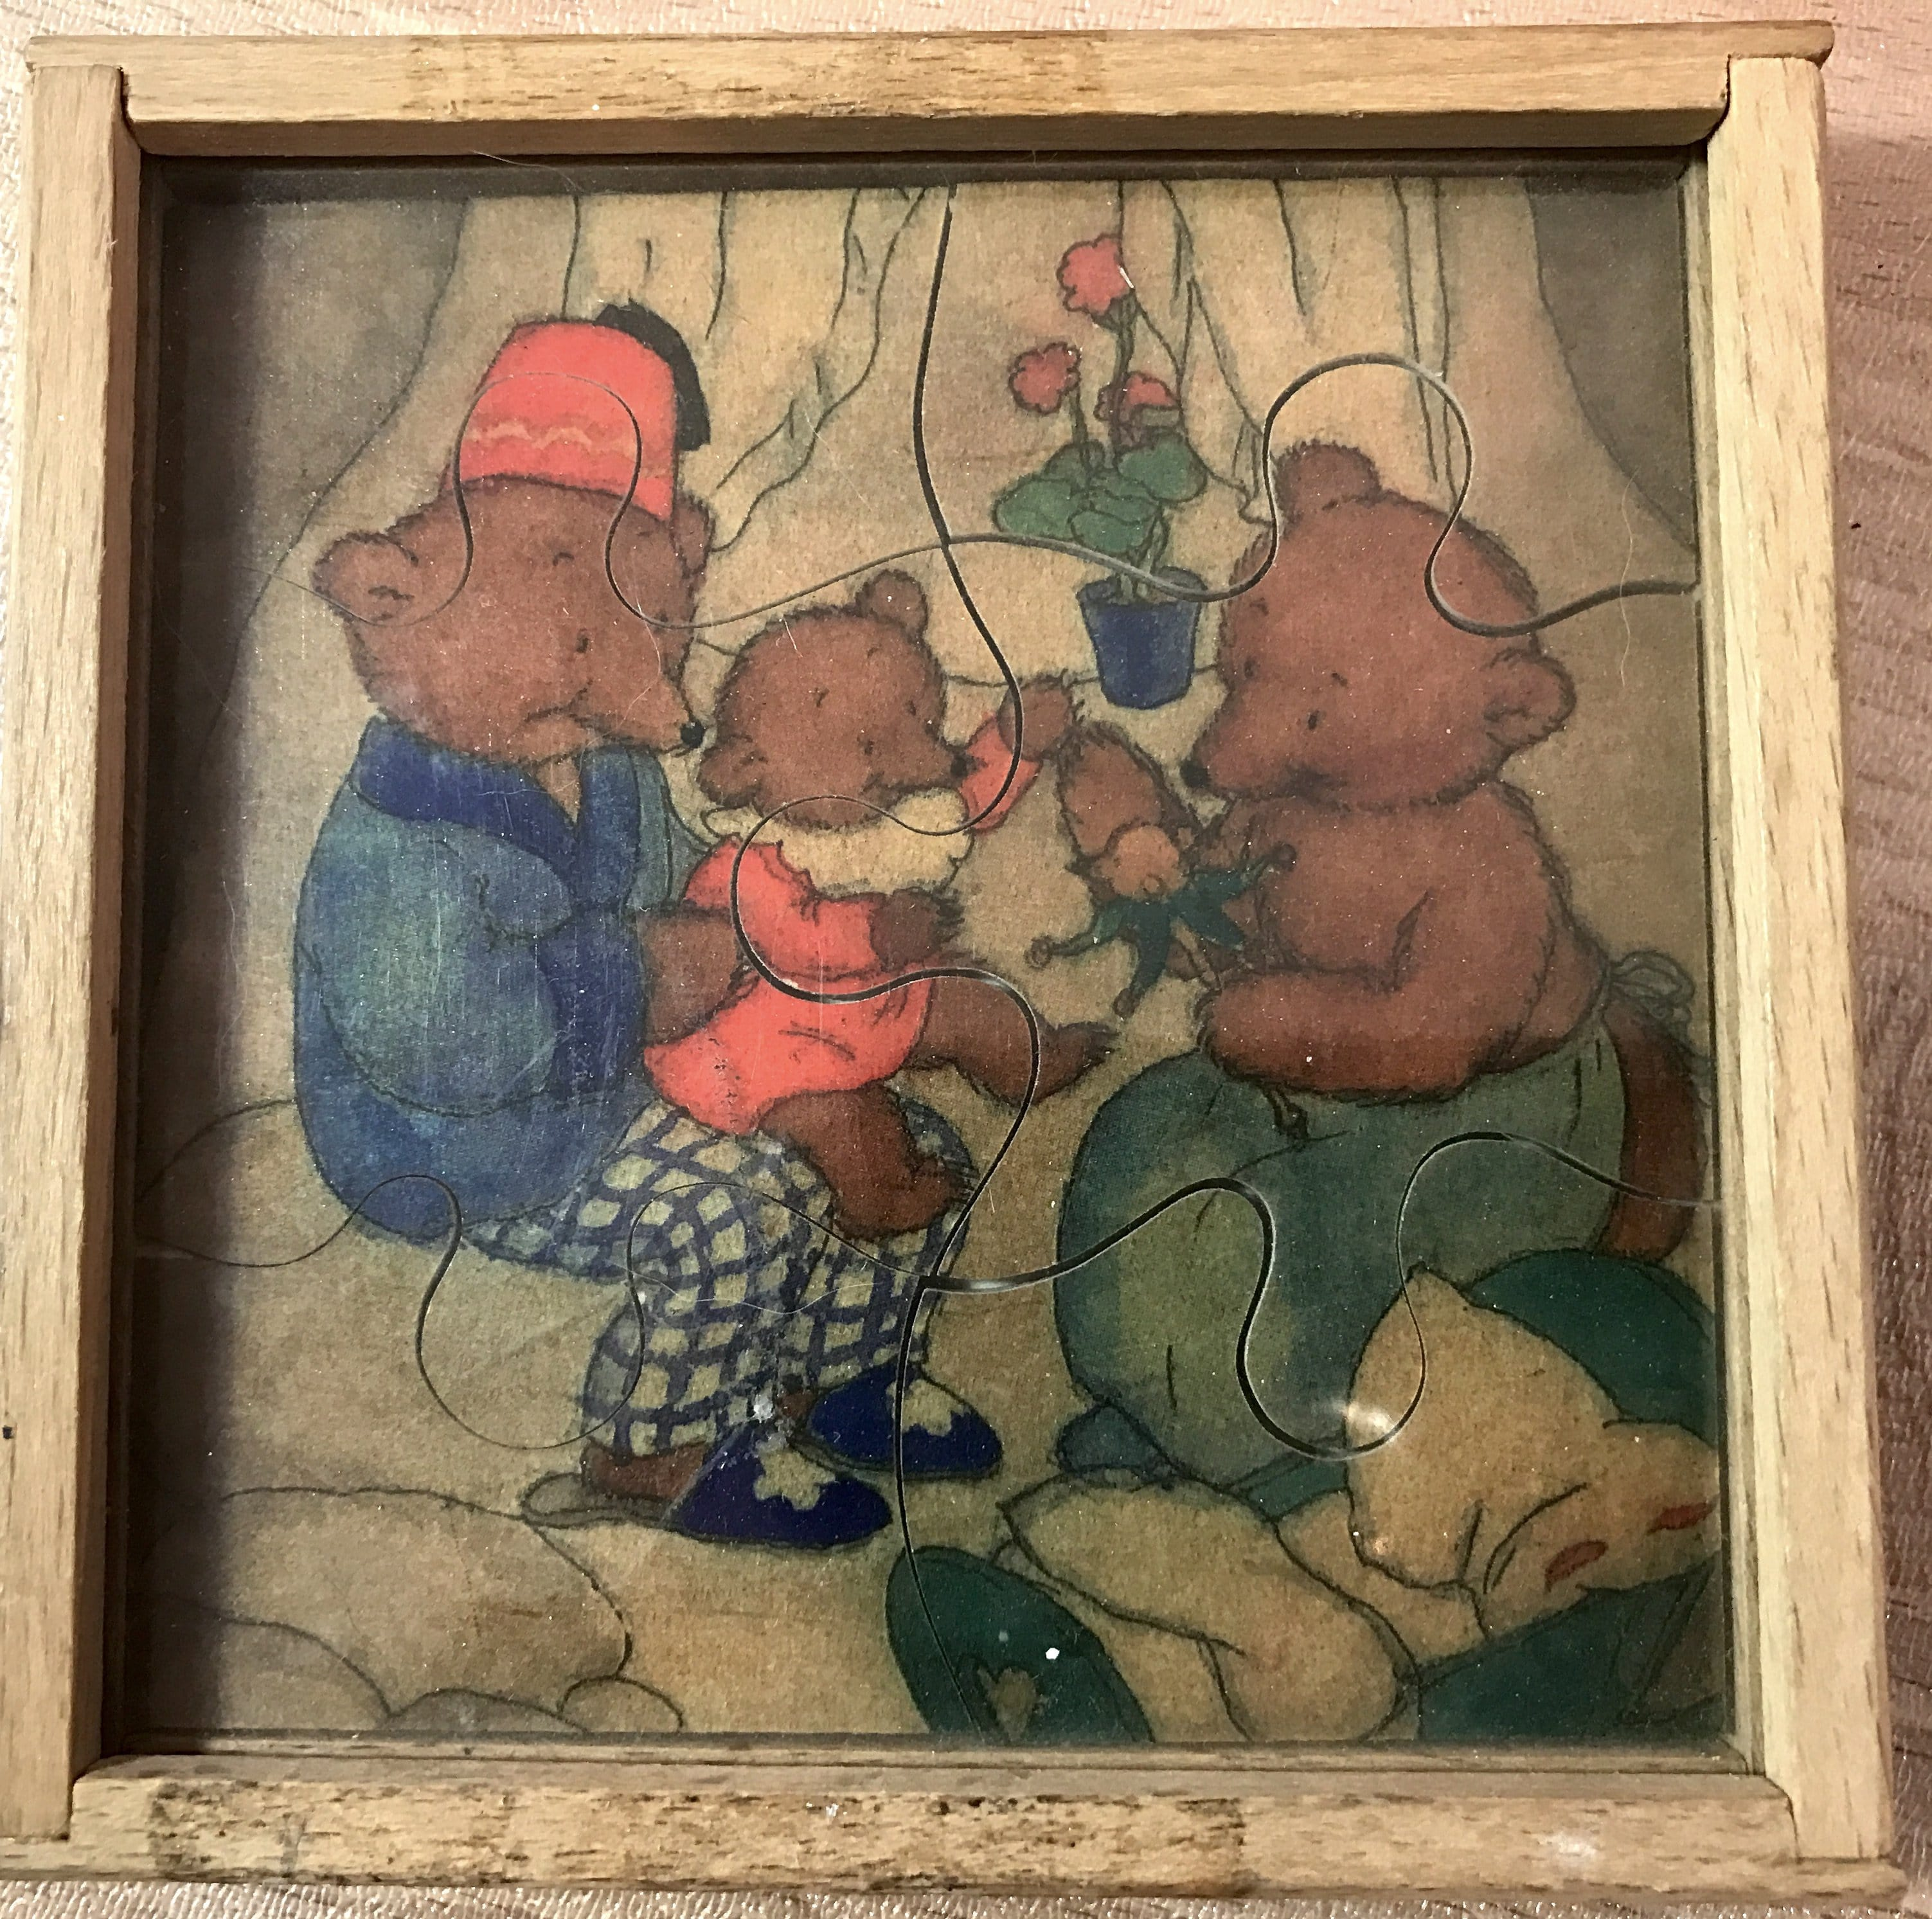 Set of 4 vintage hand painted wood small puzzles - made in Italy - by Sevi